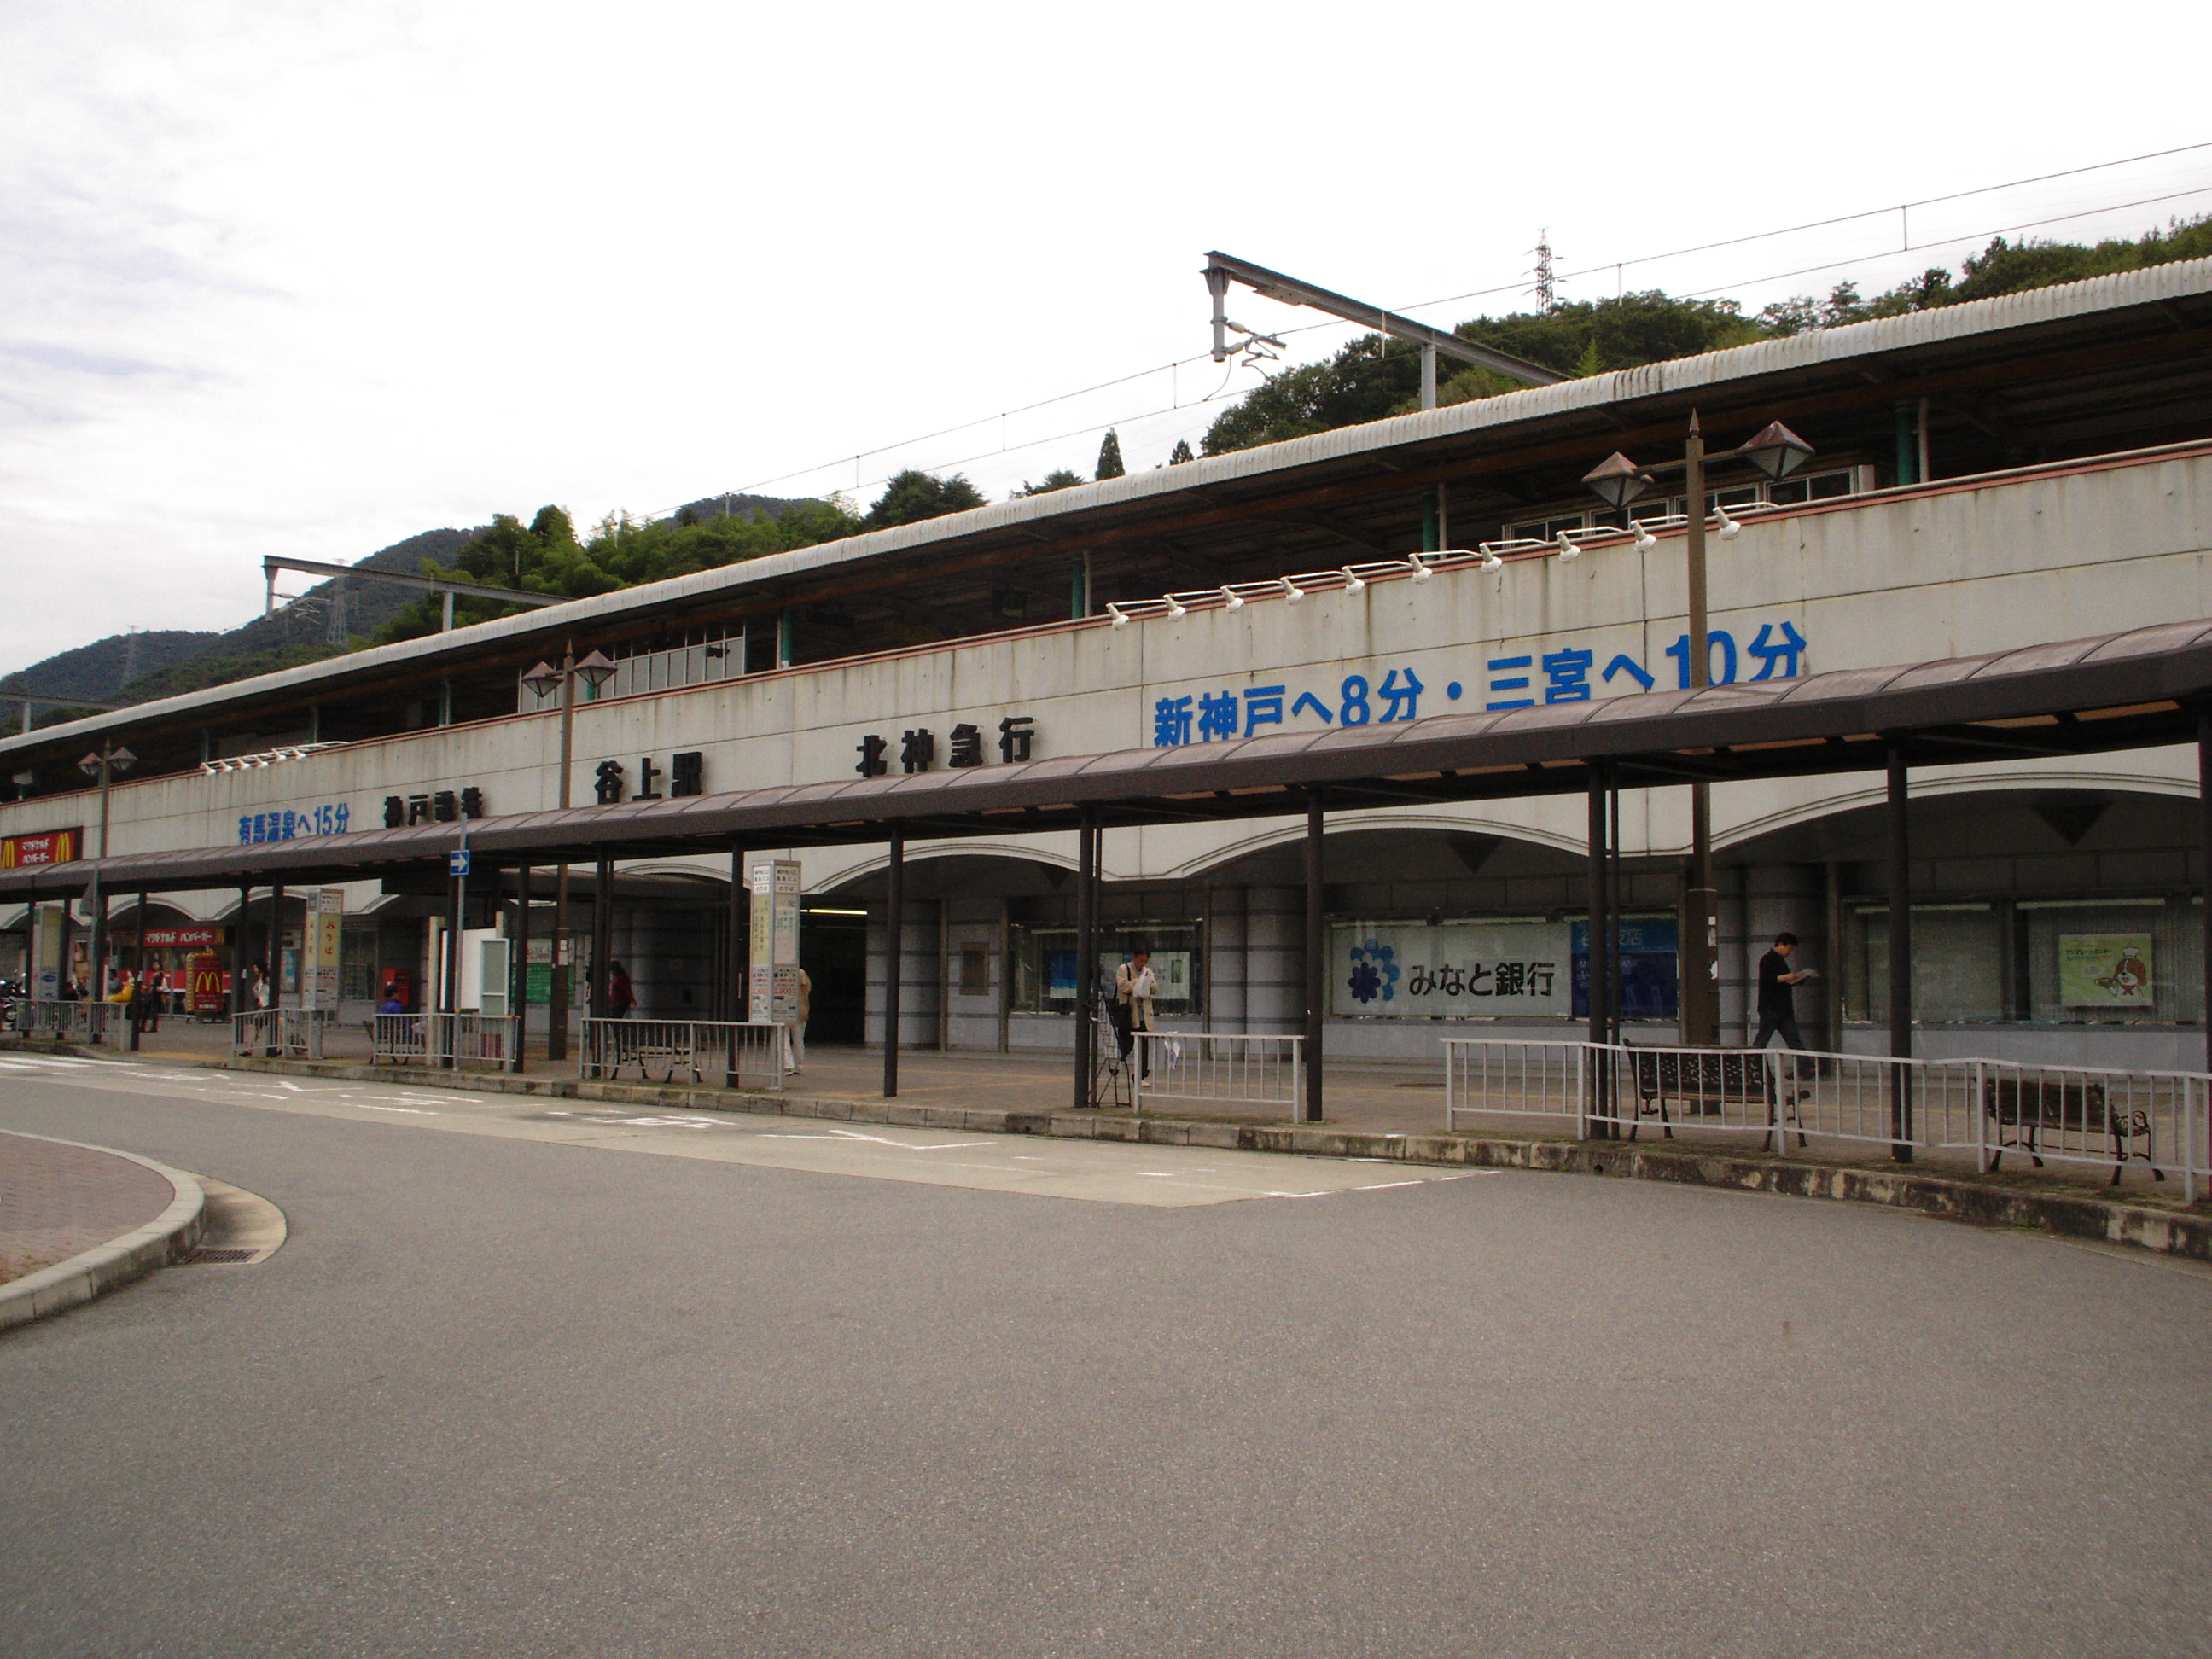 https://upload.wikimedia.org/wikipedia/commons/f/f4/TanigamiStation.JPG